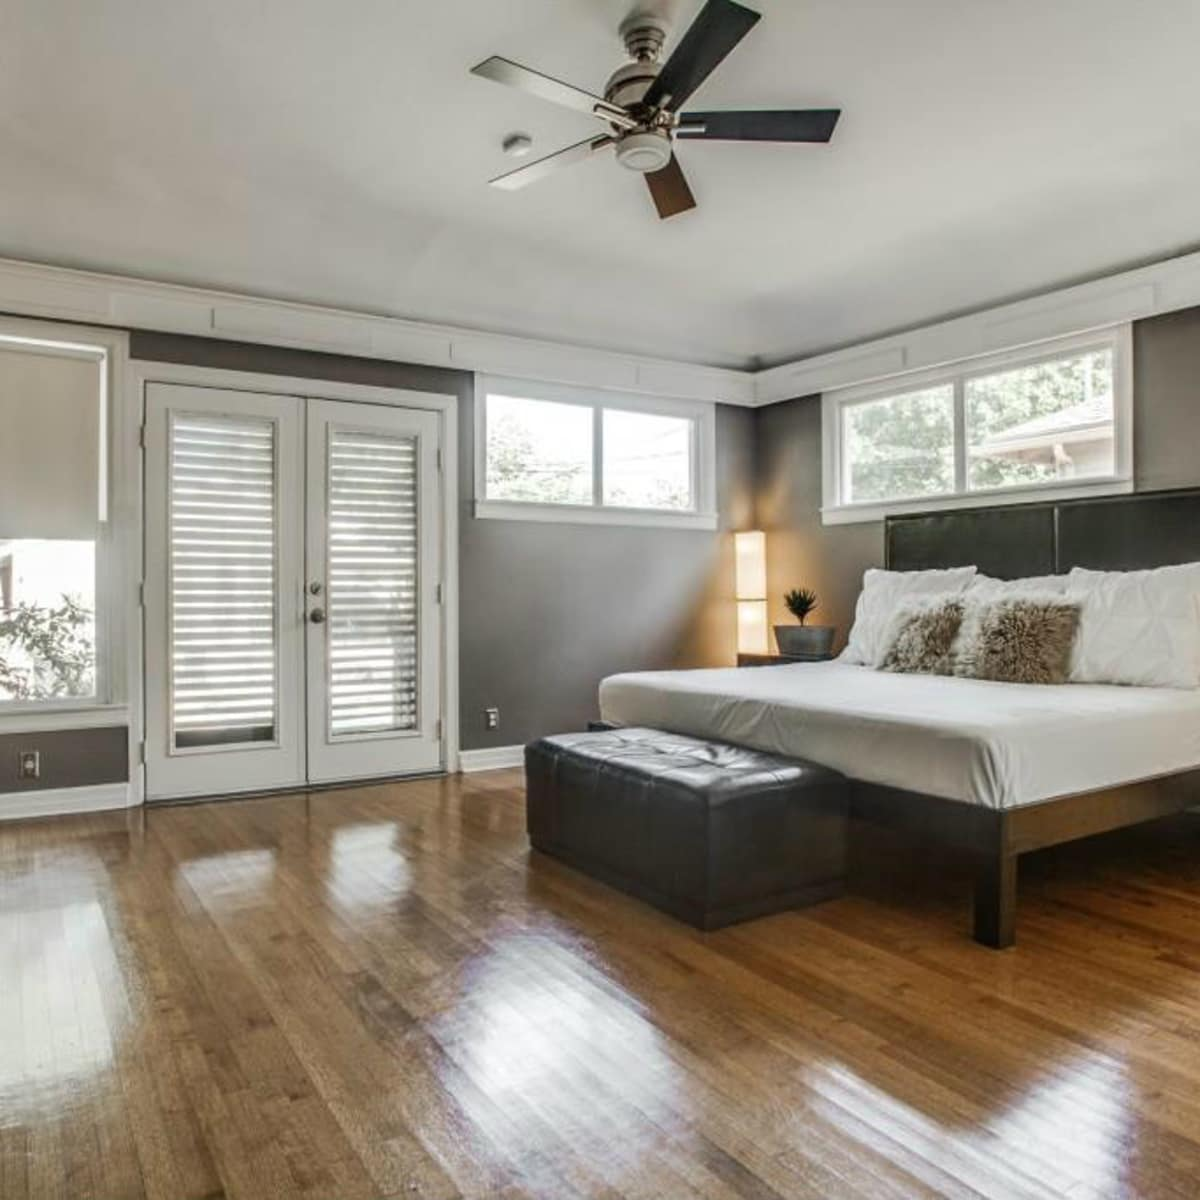 Master bedroom at 114. N Edgefield in Dallas